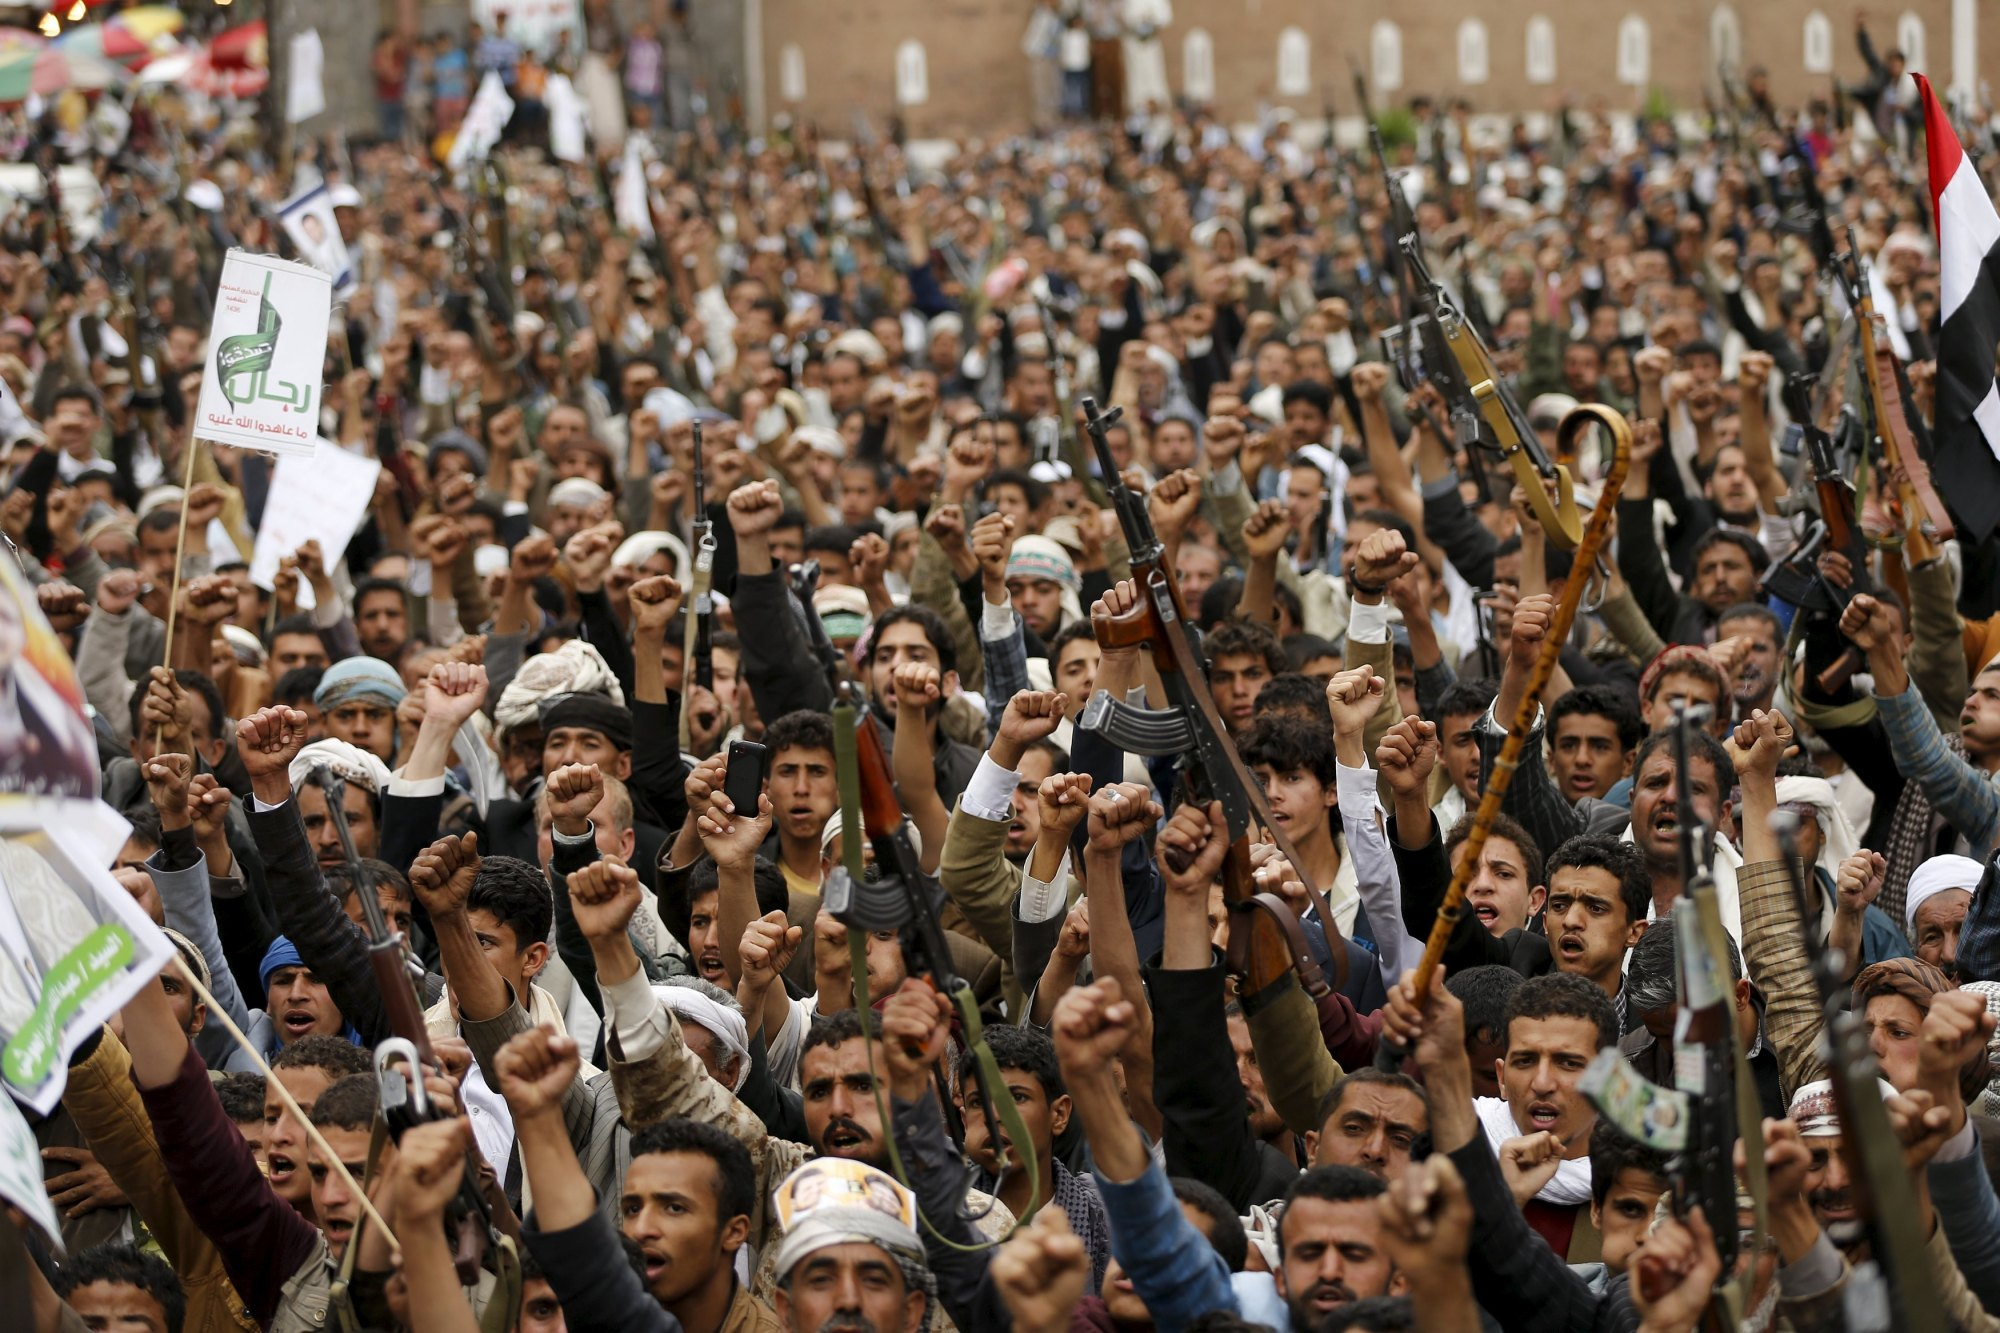 Yemen-conflict-Red-Cross-calls-for-truce